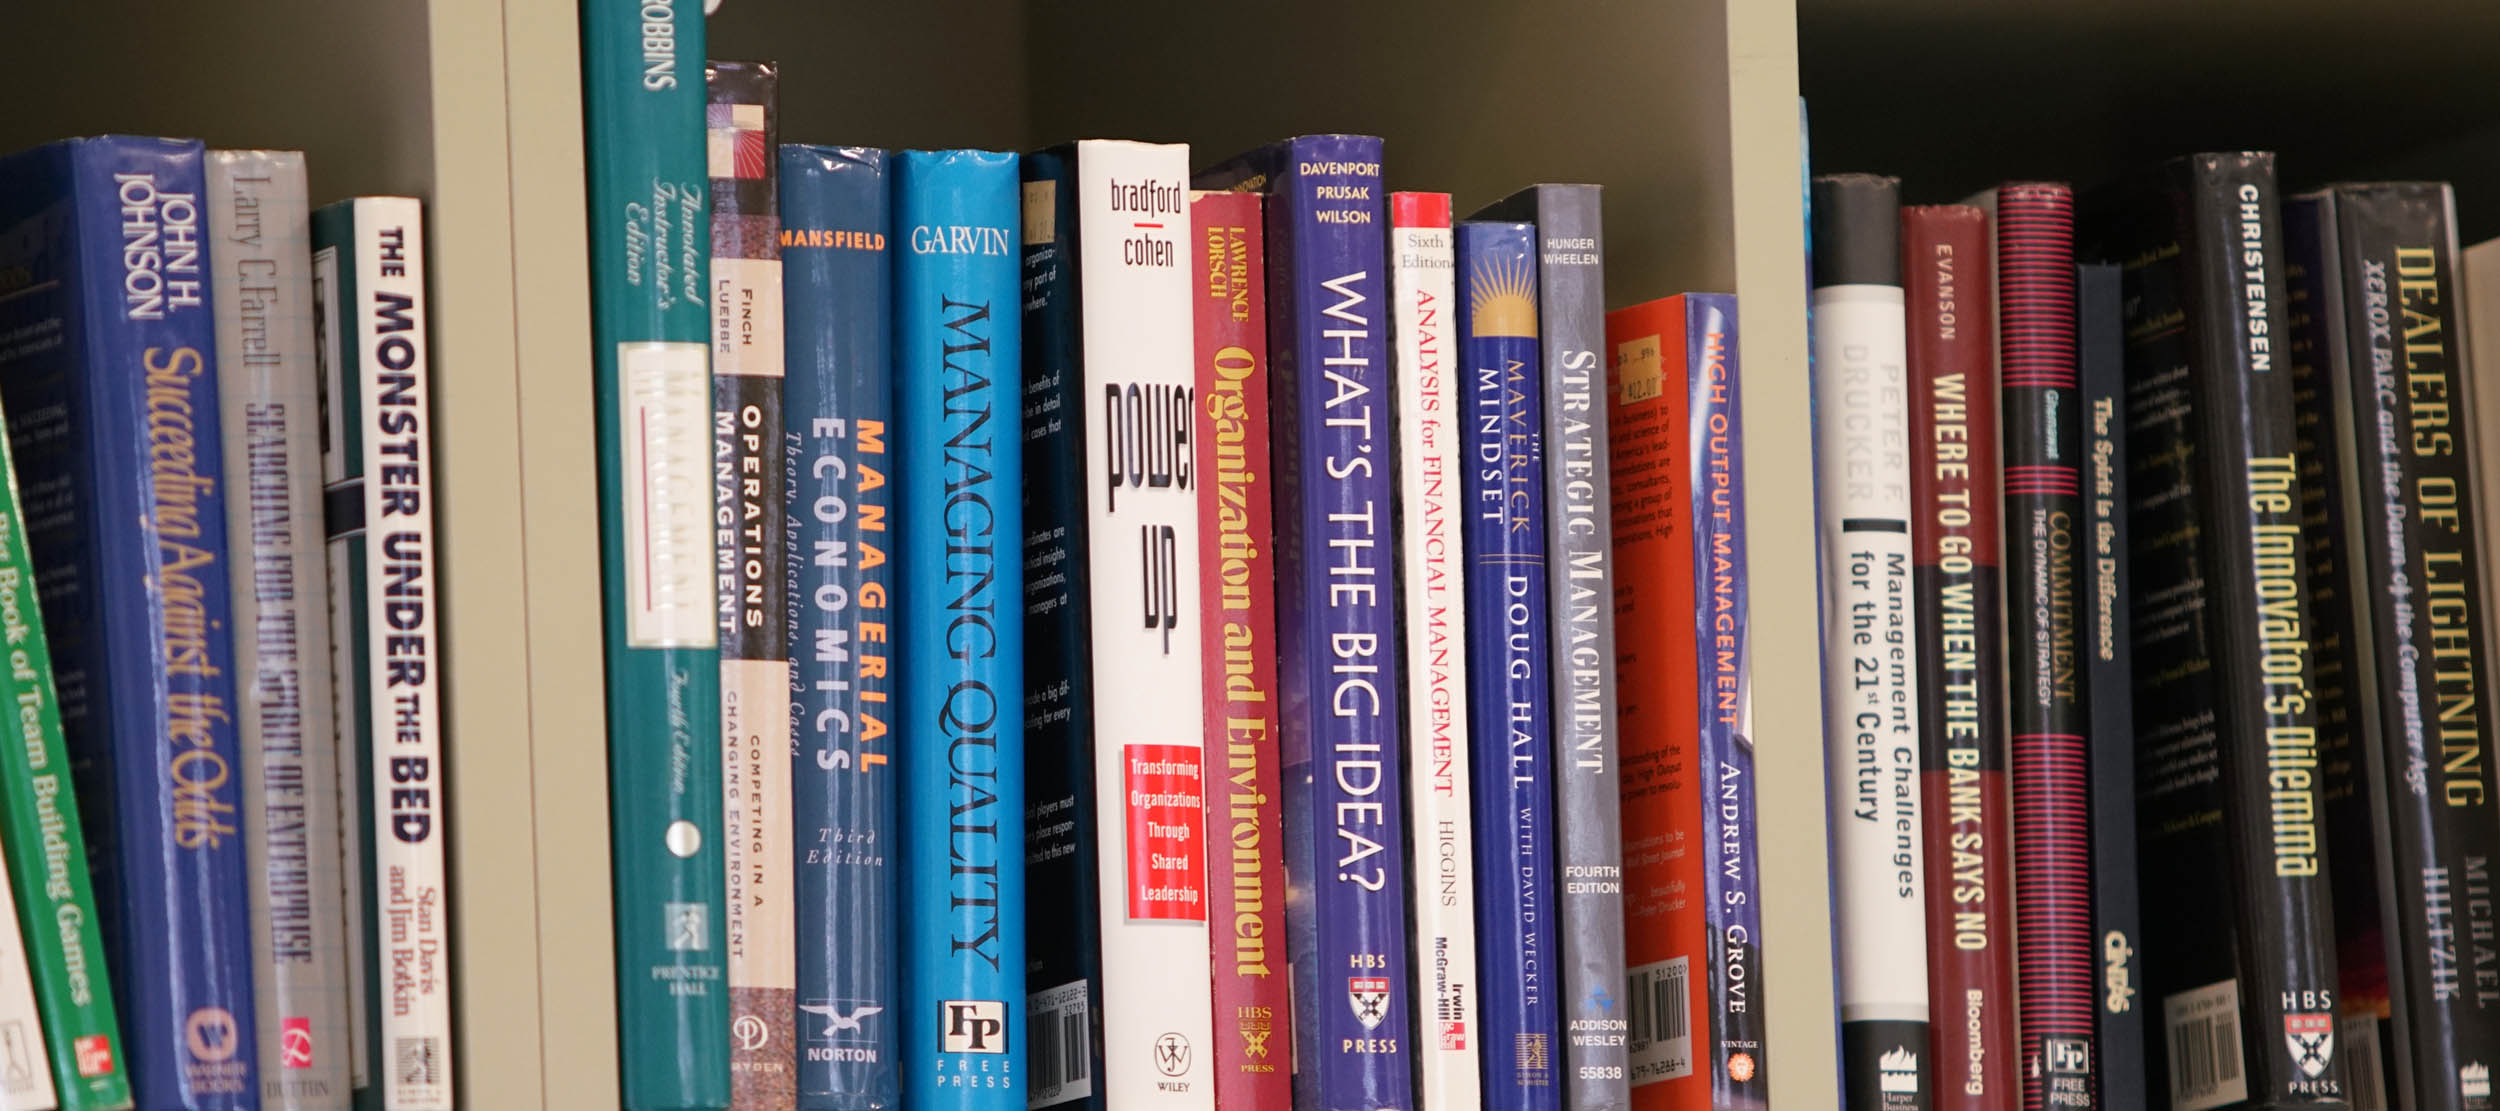 A row of books in the Institute for Entrepreneurship conference room